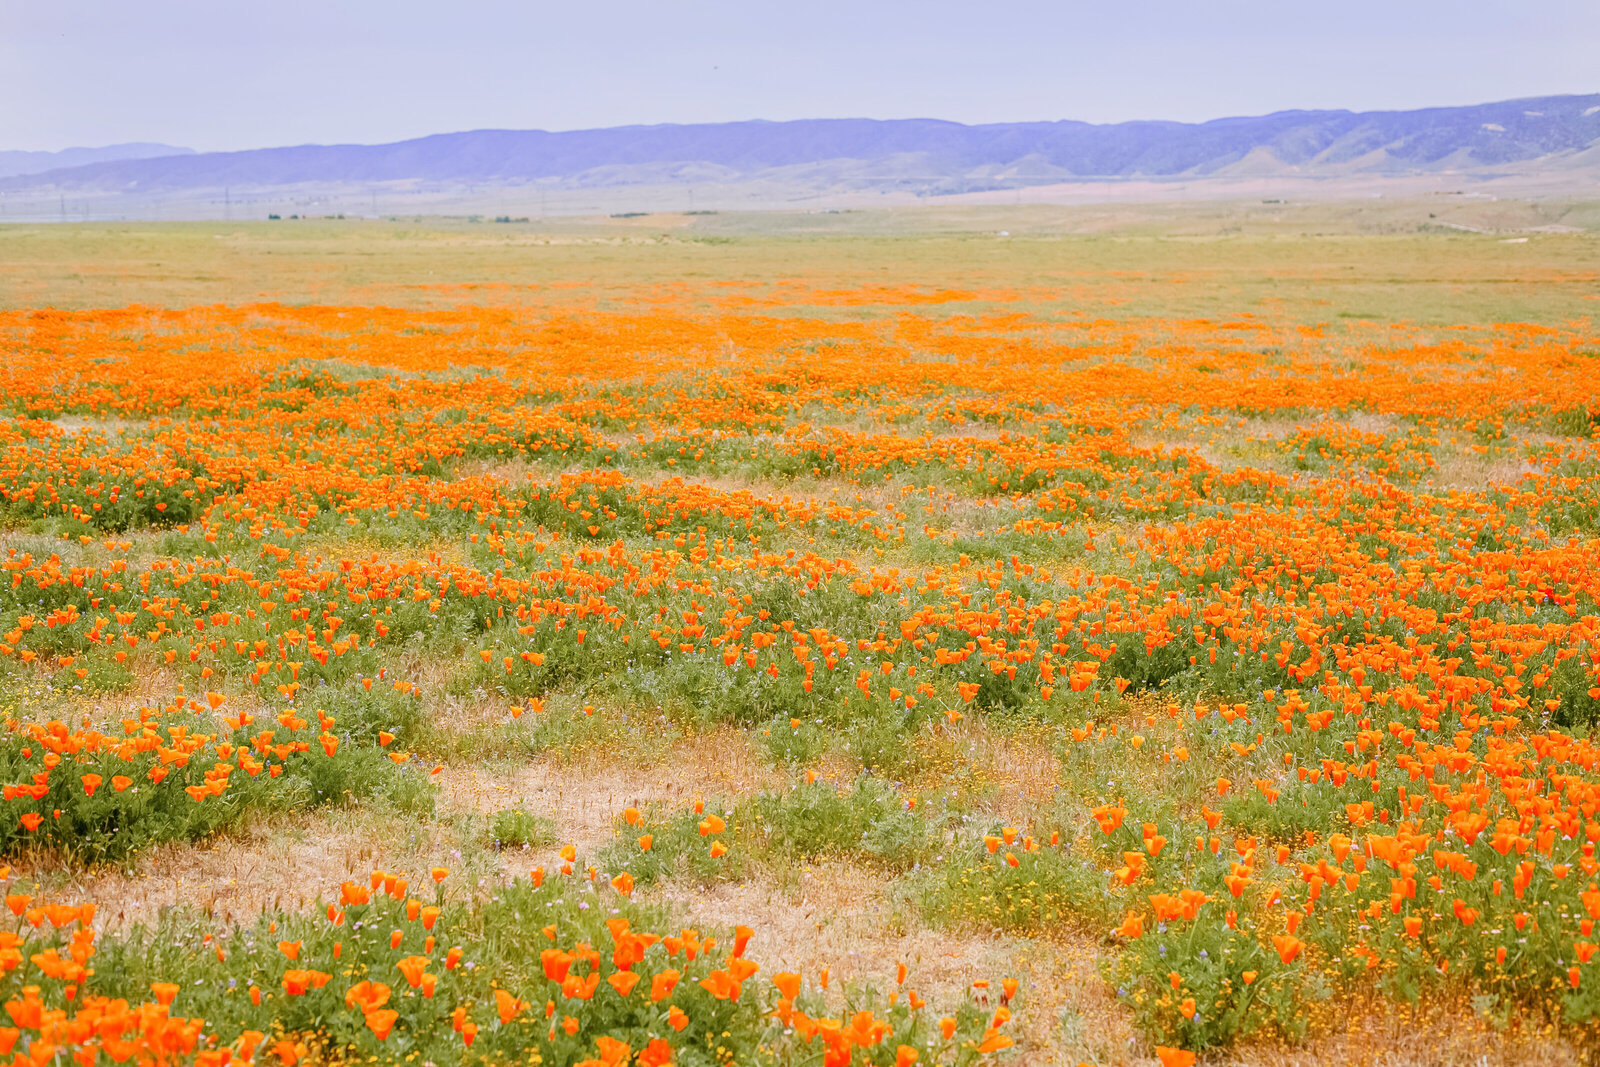 051-KBP-poppies-antelope-valley